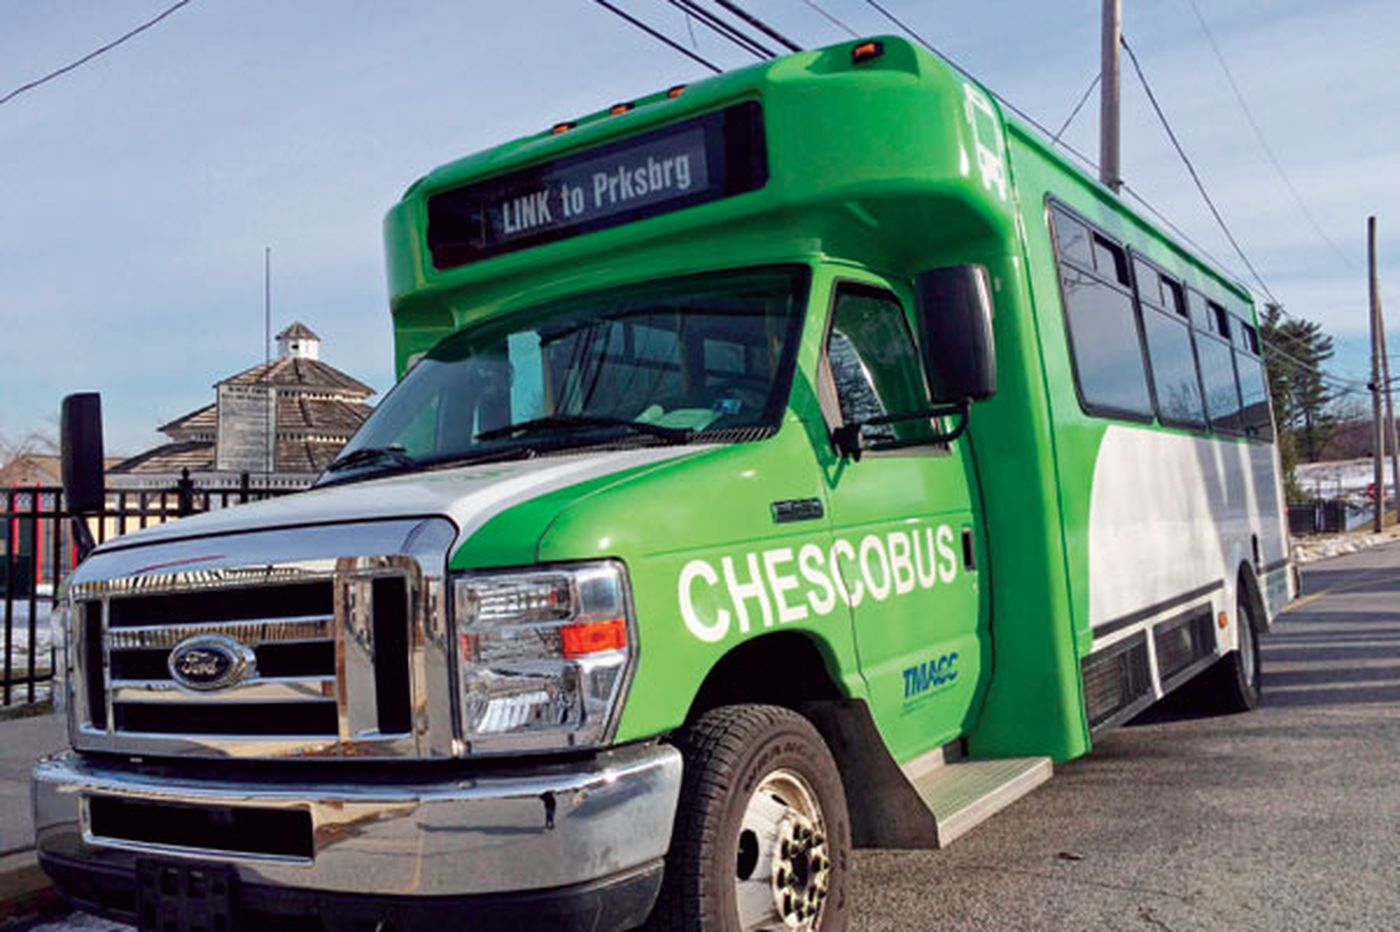 Chesco buses get makeover to attract more riders